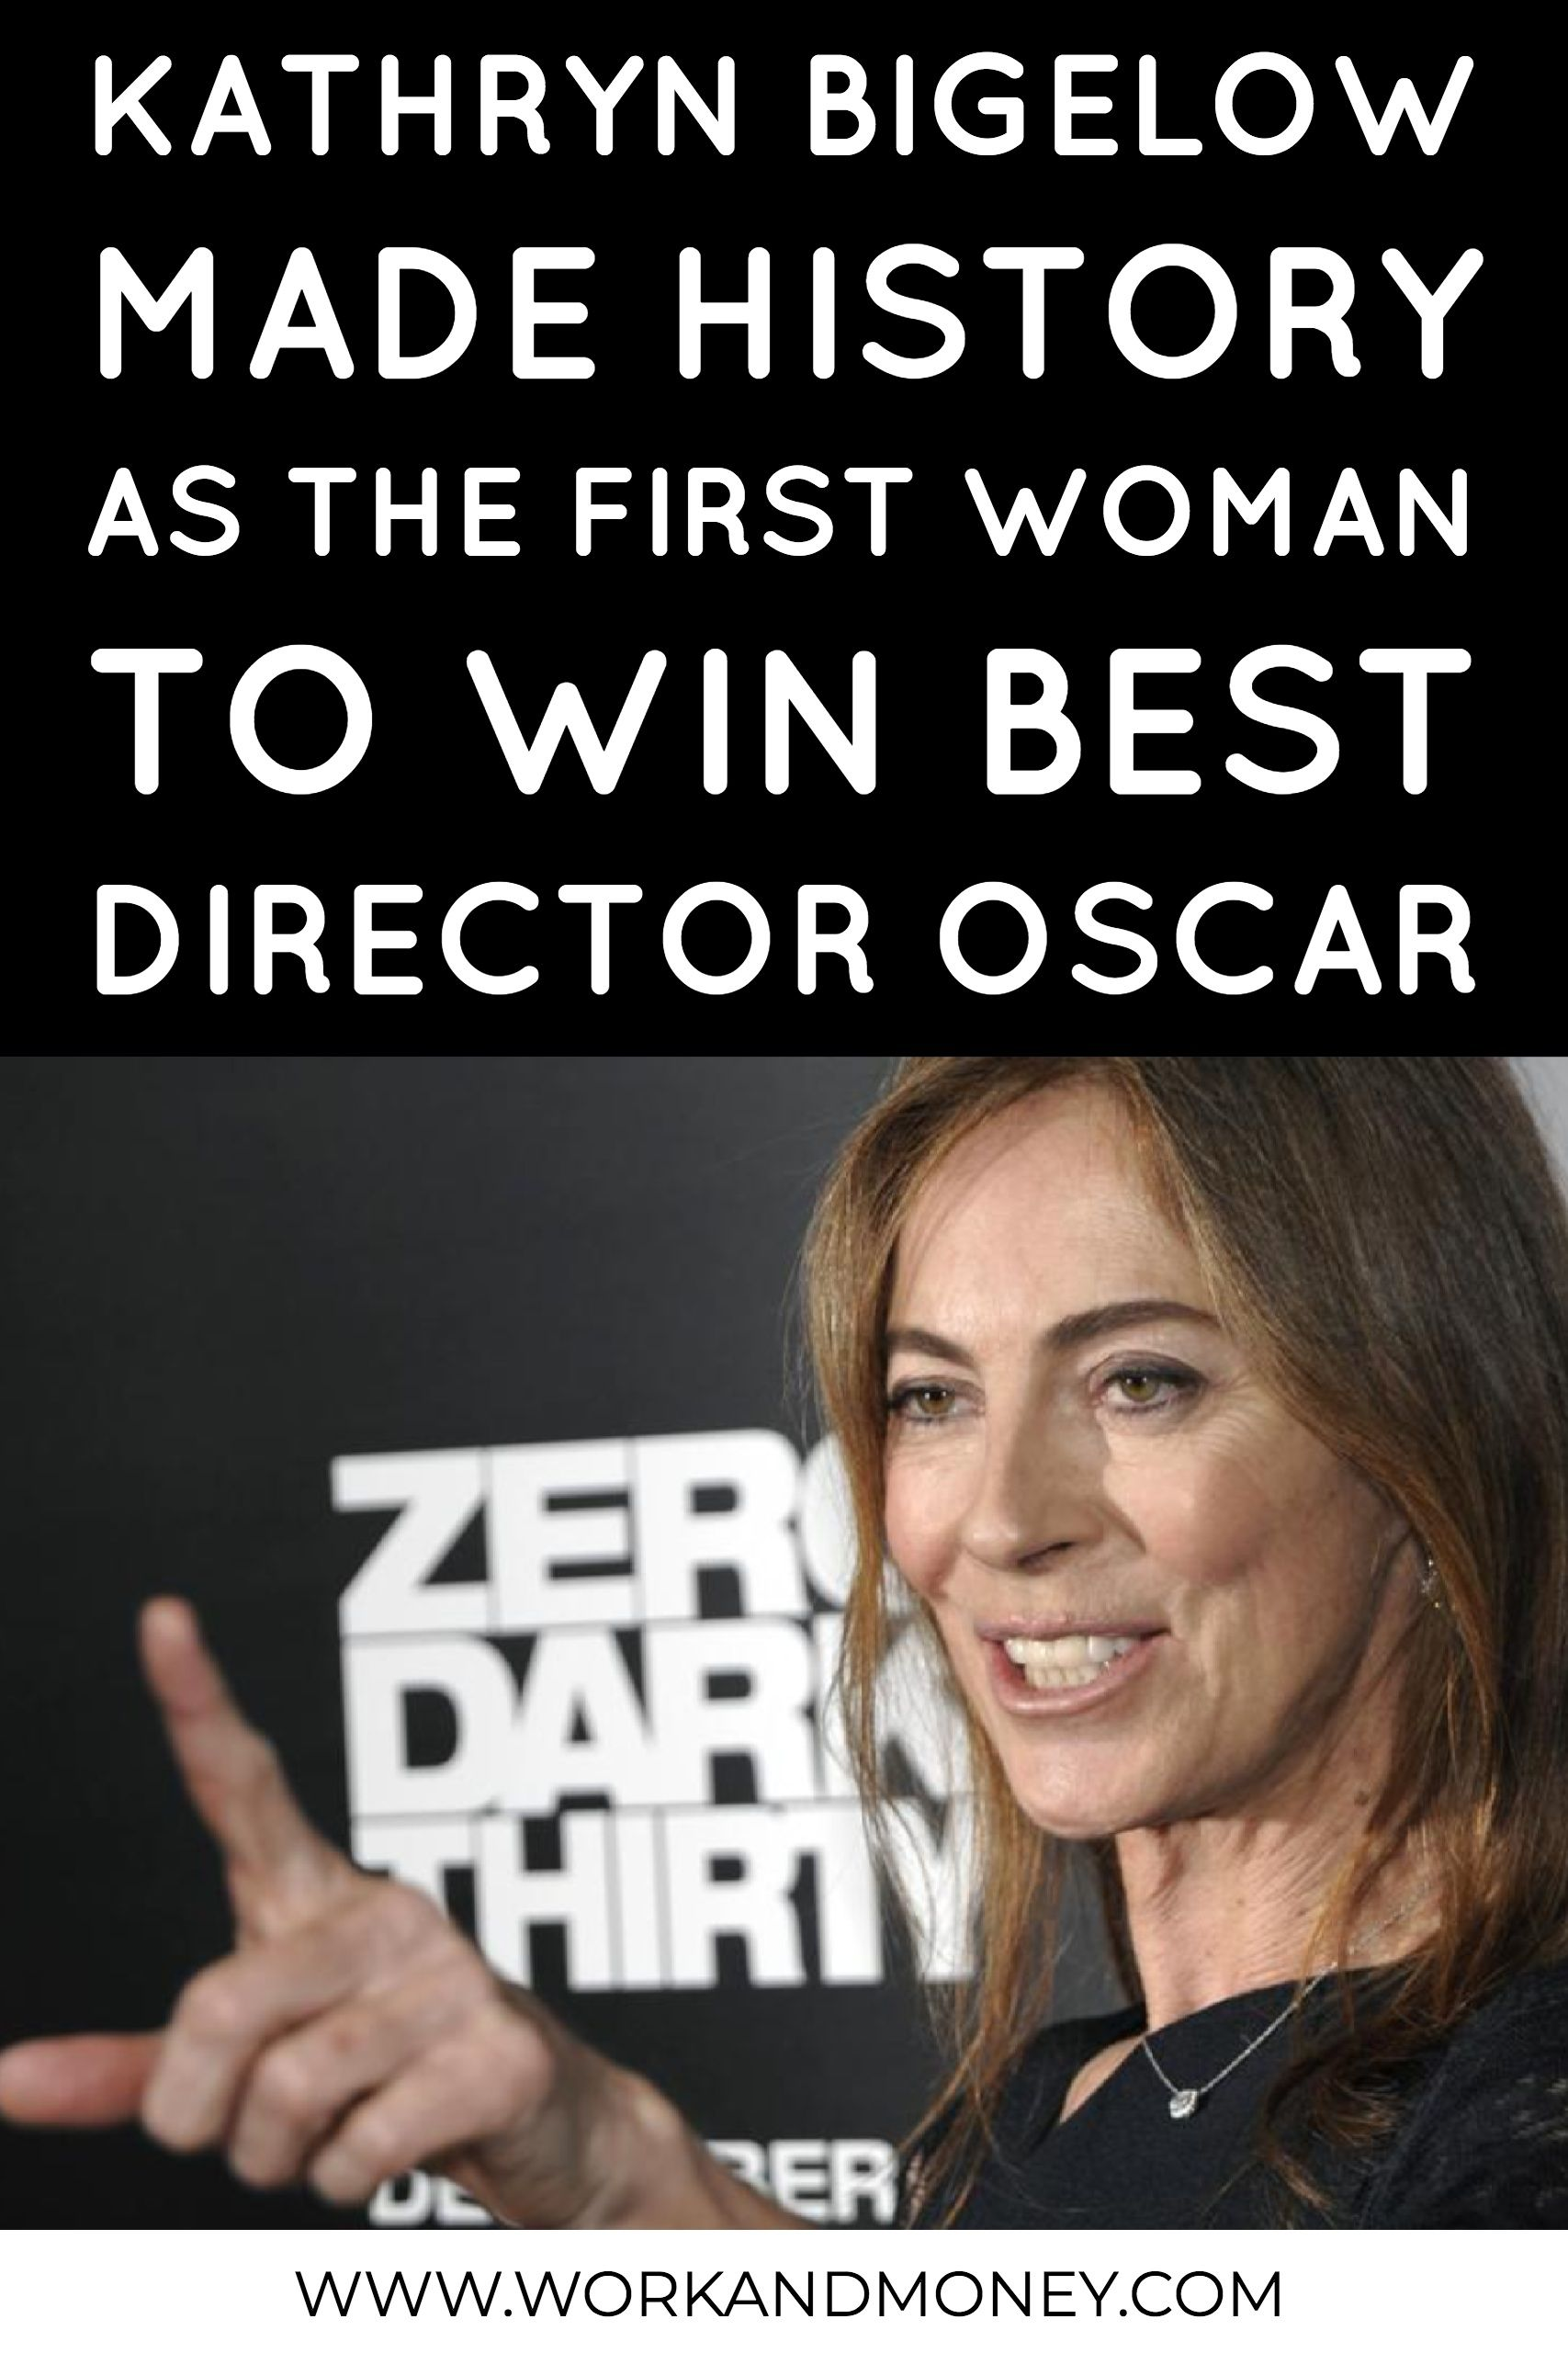 Learn more about the first female director to win an Oscar ...